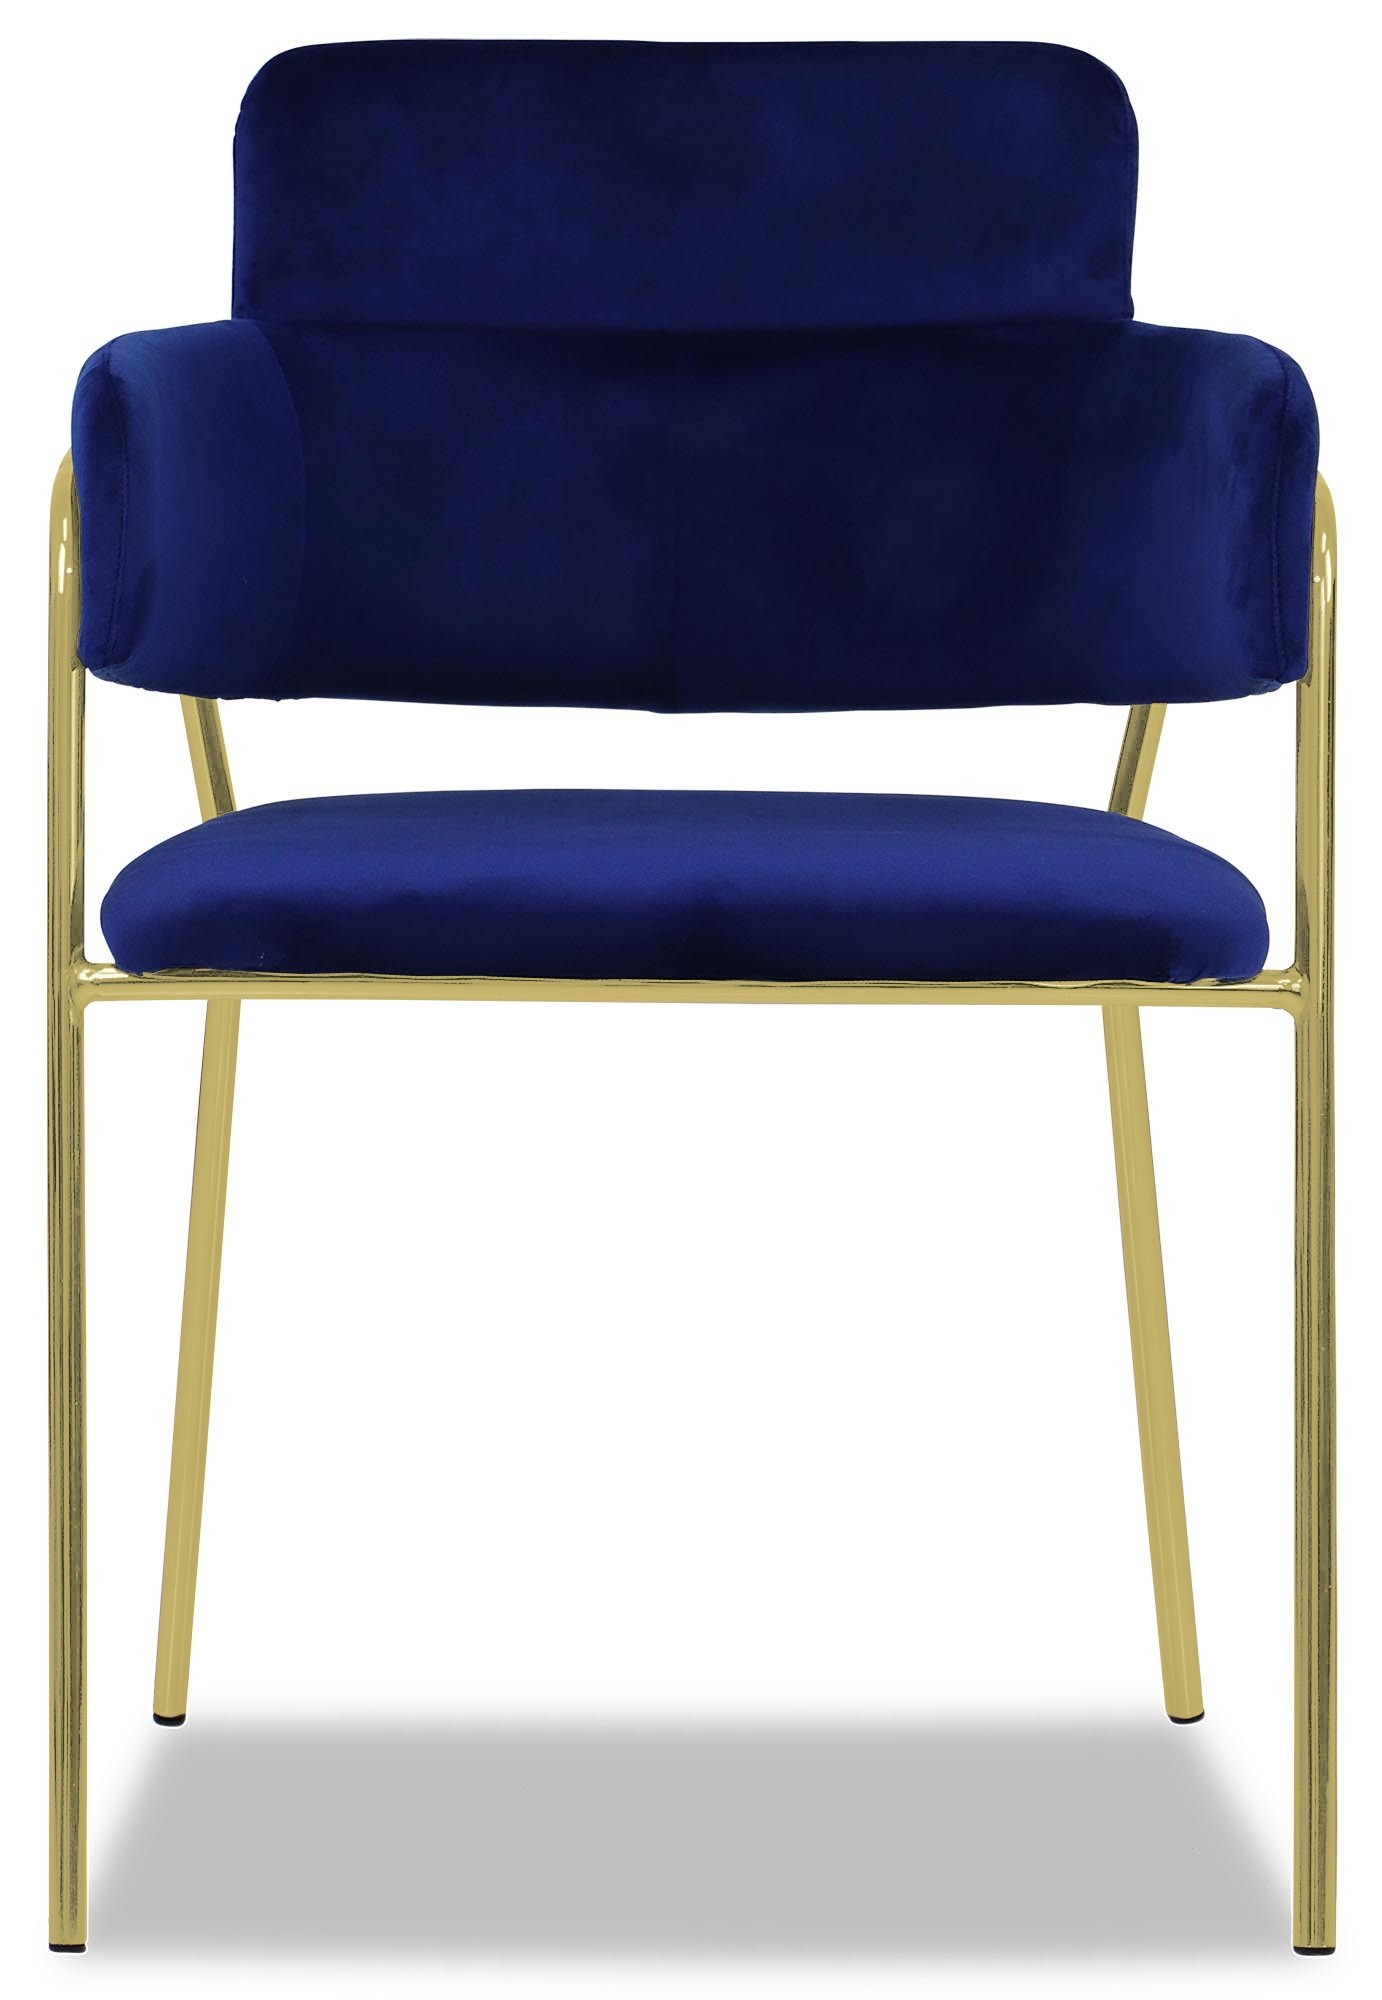 Royal Blue Chair Decor Pink Living Room: Emmiel Chair With Gold Legs (Royal Blue)